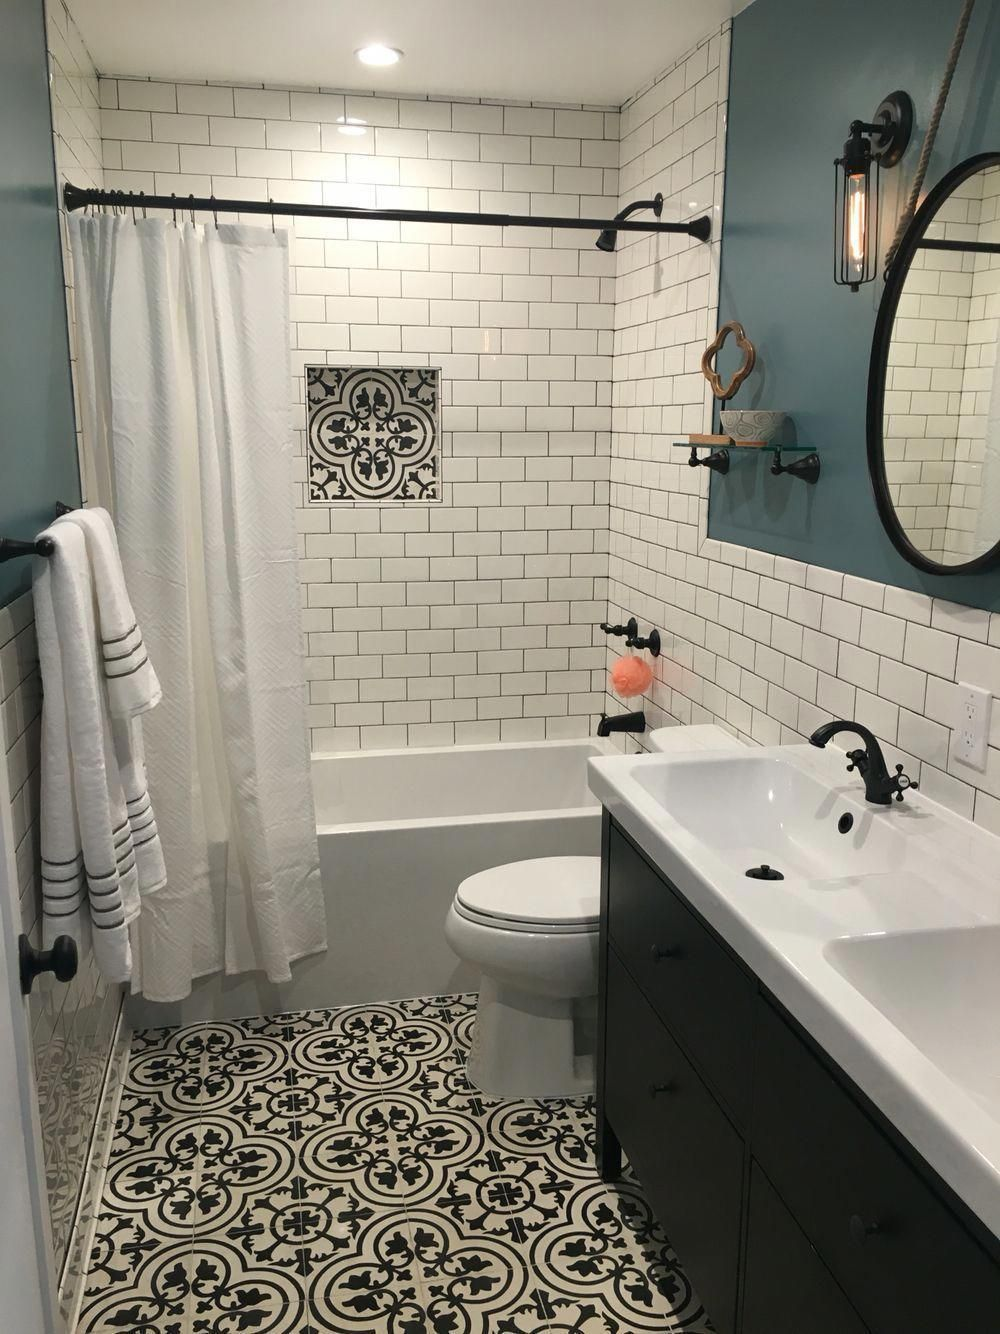 Most Popular Small Bathroom Remodel Ideas On A Budget In 2018 This Beautiful Look Was Created Bathrooms Remodel Bathroom Remodel Master Small Bathroom Remodel